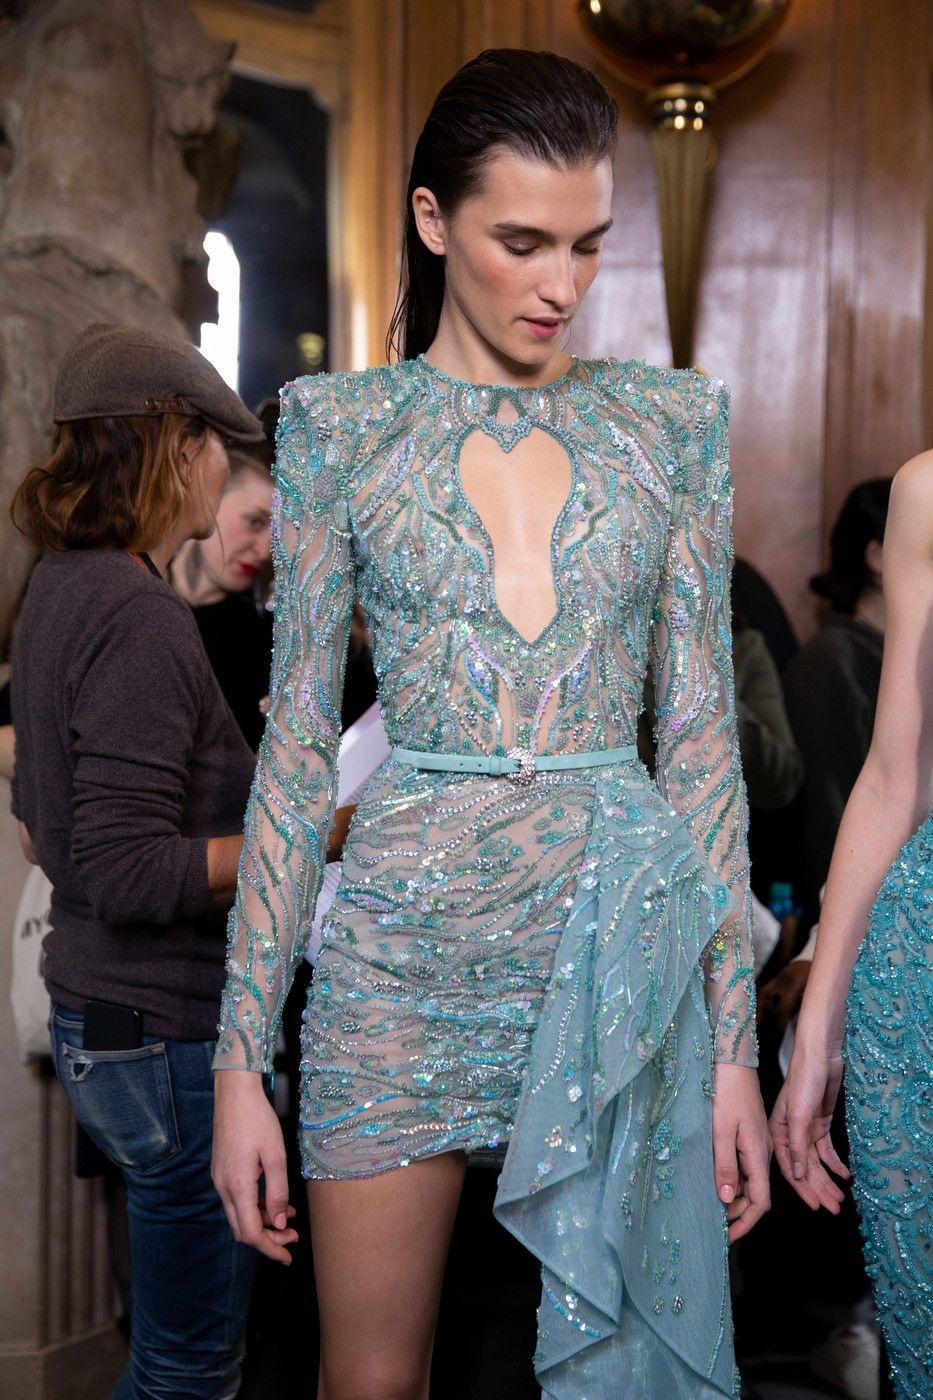 Zuhair Murad at Couture Spring 2019 - Backstage Runway Photos